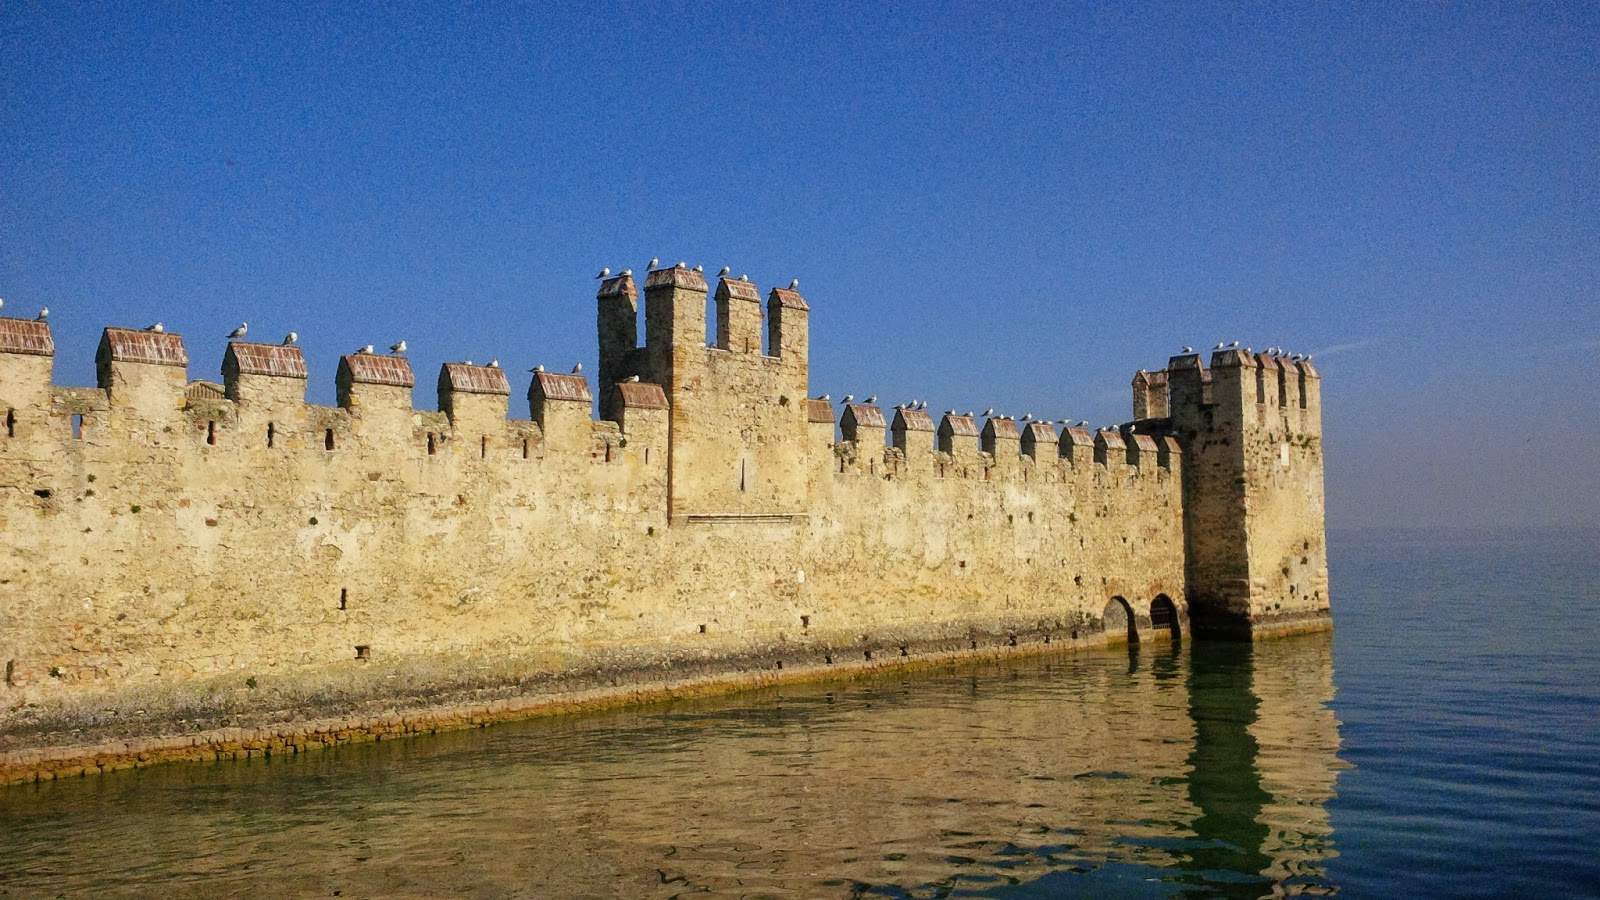 The walls of Sirmione's castle extend deep into Lake Garda